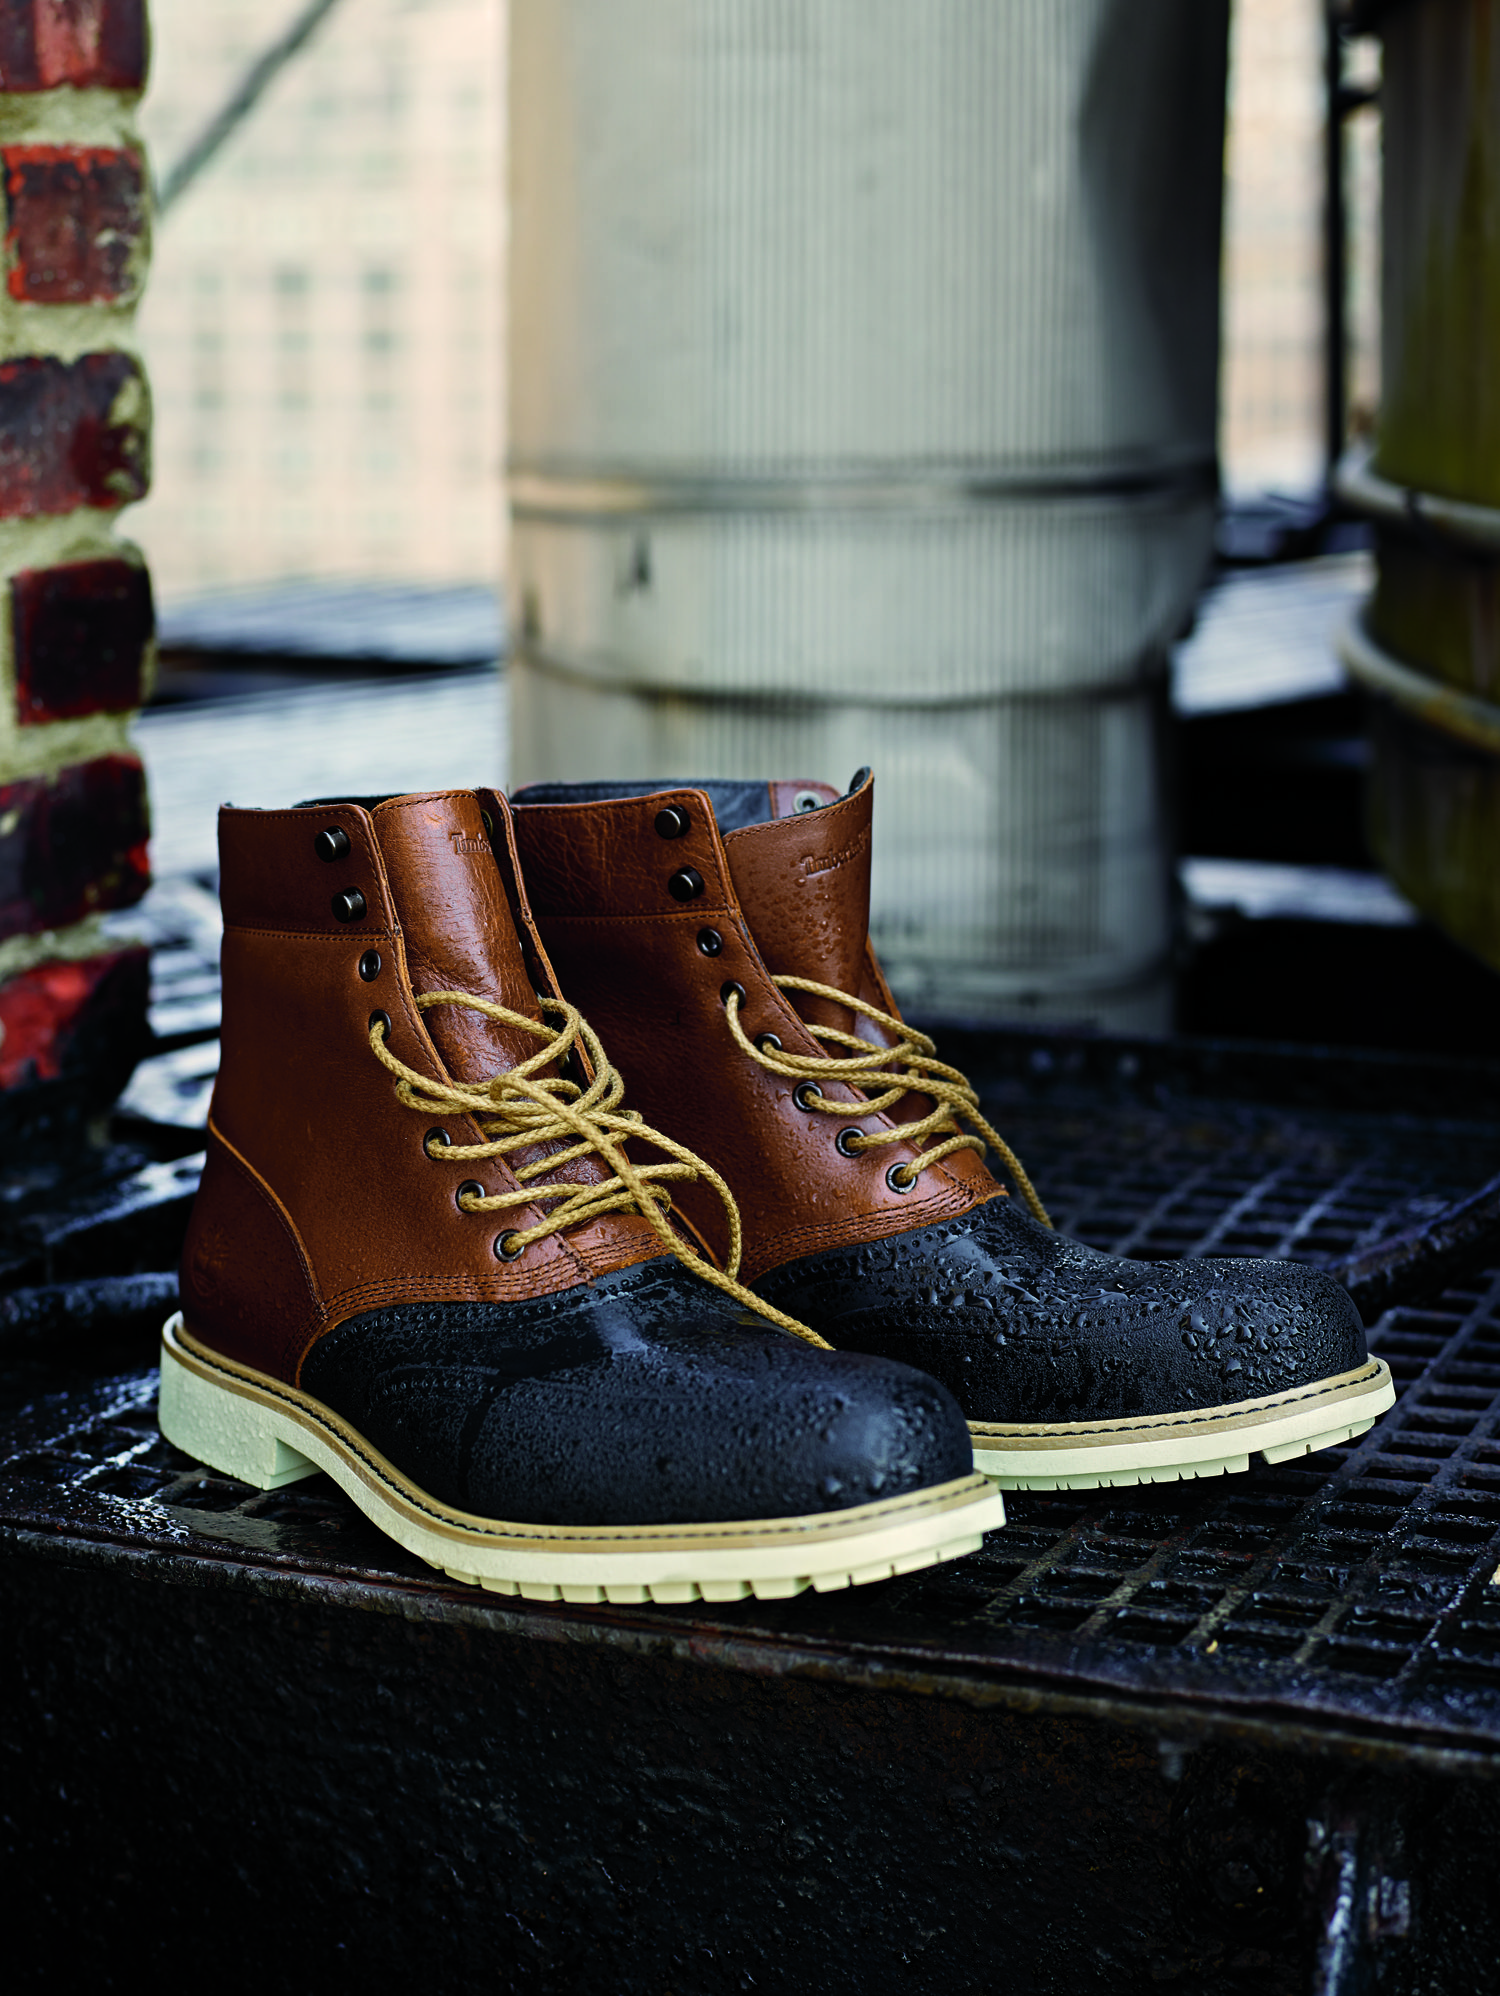 new style 595c1 37fed Waterproof for all your city adventures. The Men s Stormbuck Duck boot.   timberland  mensboots  boots  mensstyle  style  mensshoes